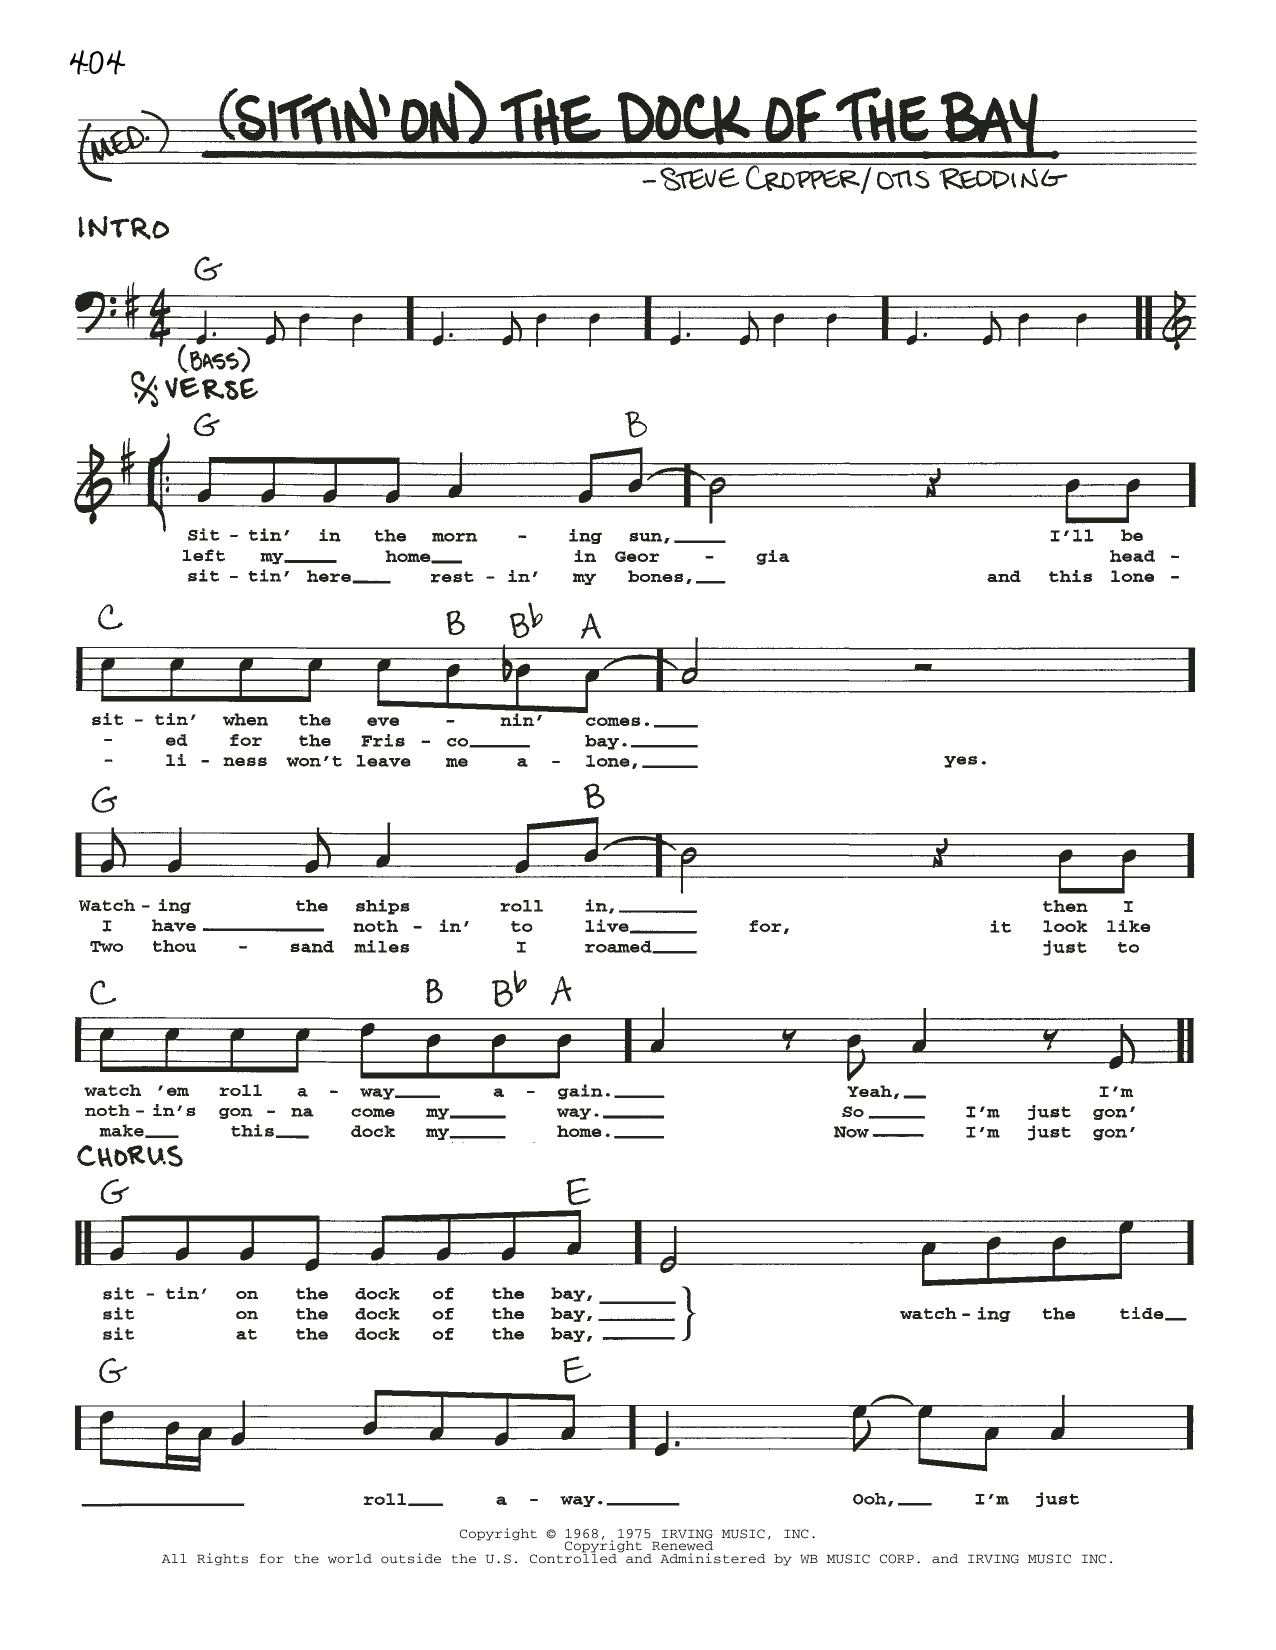 Otis Redding (Sittin' On) The Dock Of The Bay sheet music notes and chords